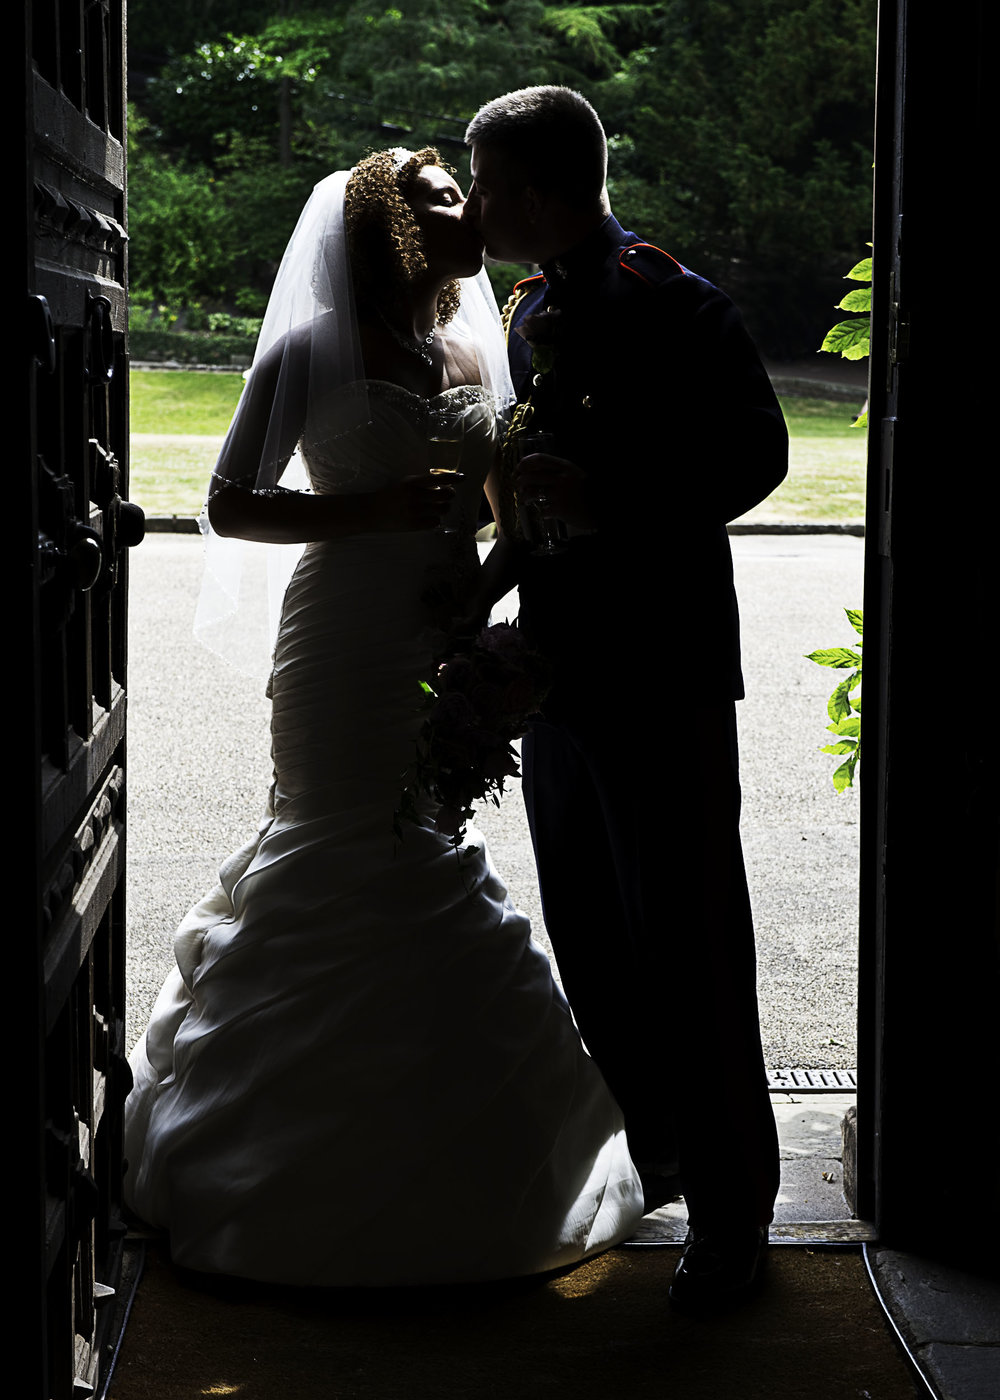 A wedding photographer can use natural light as well as flash lighting. This silhouette has enough detail to add to the interest in the picture.